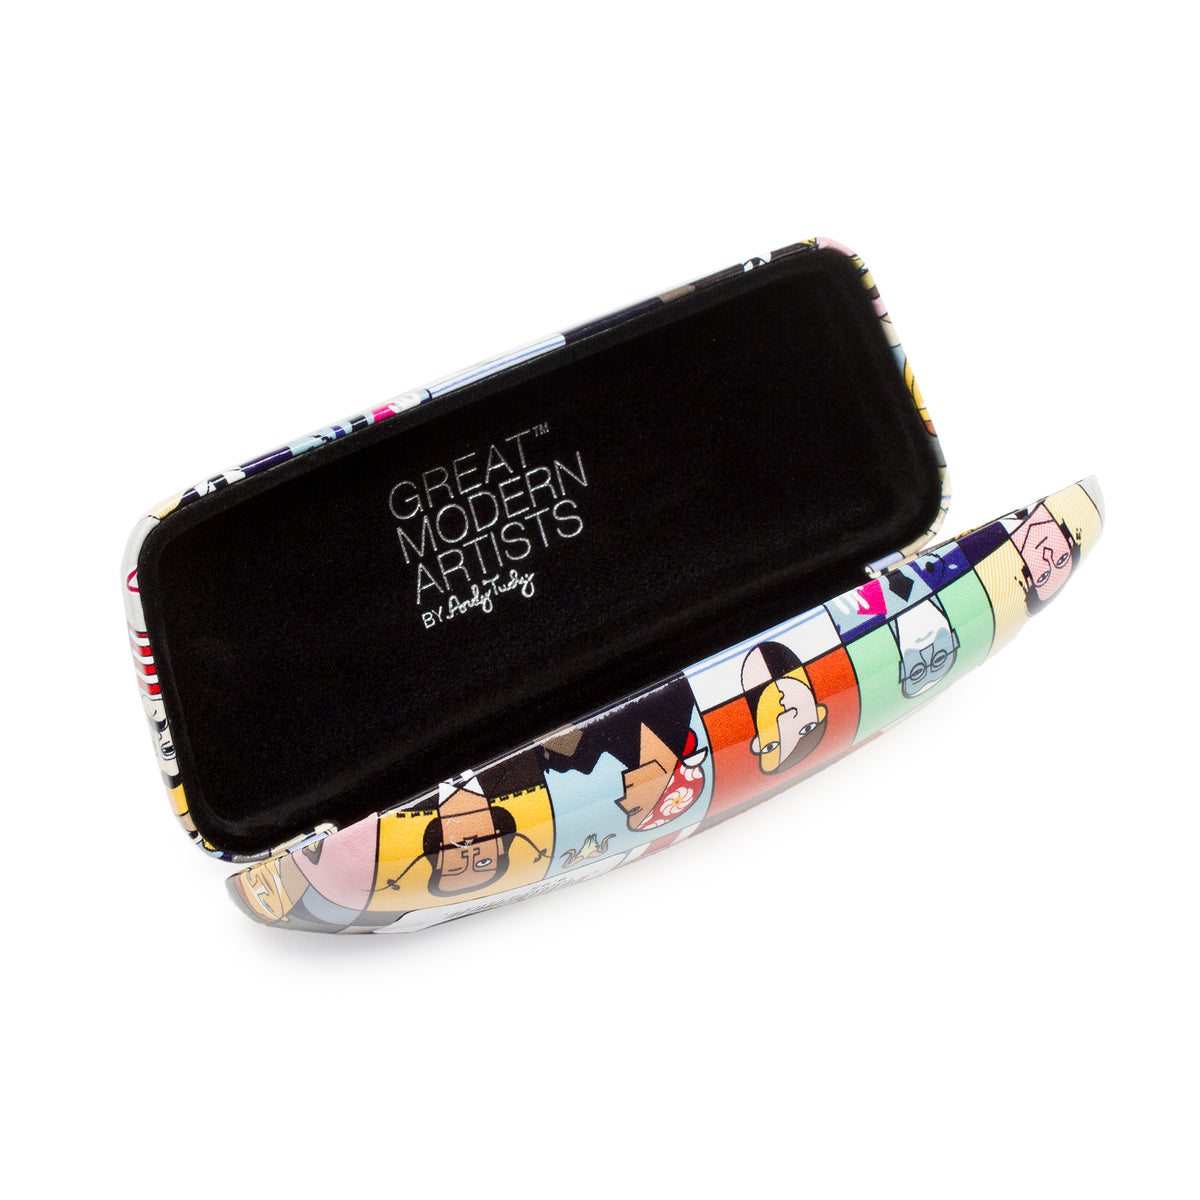 Great Modern Artist Glasses Case shown open | Getty Store